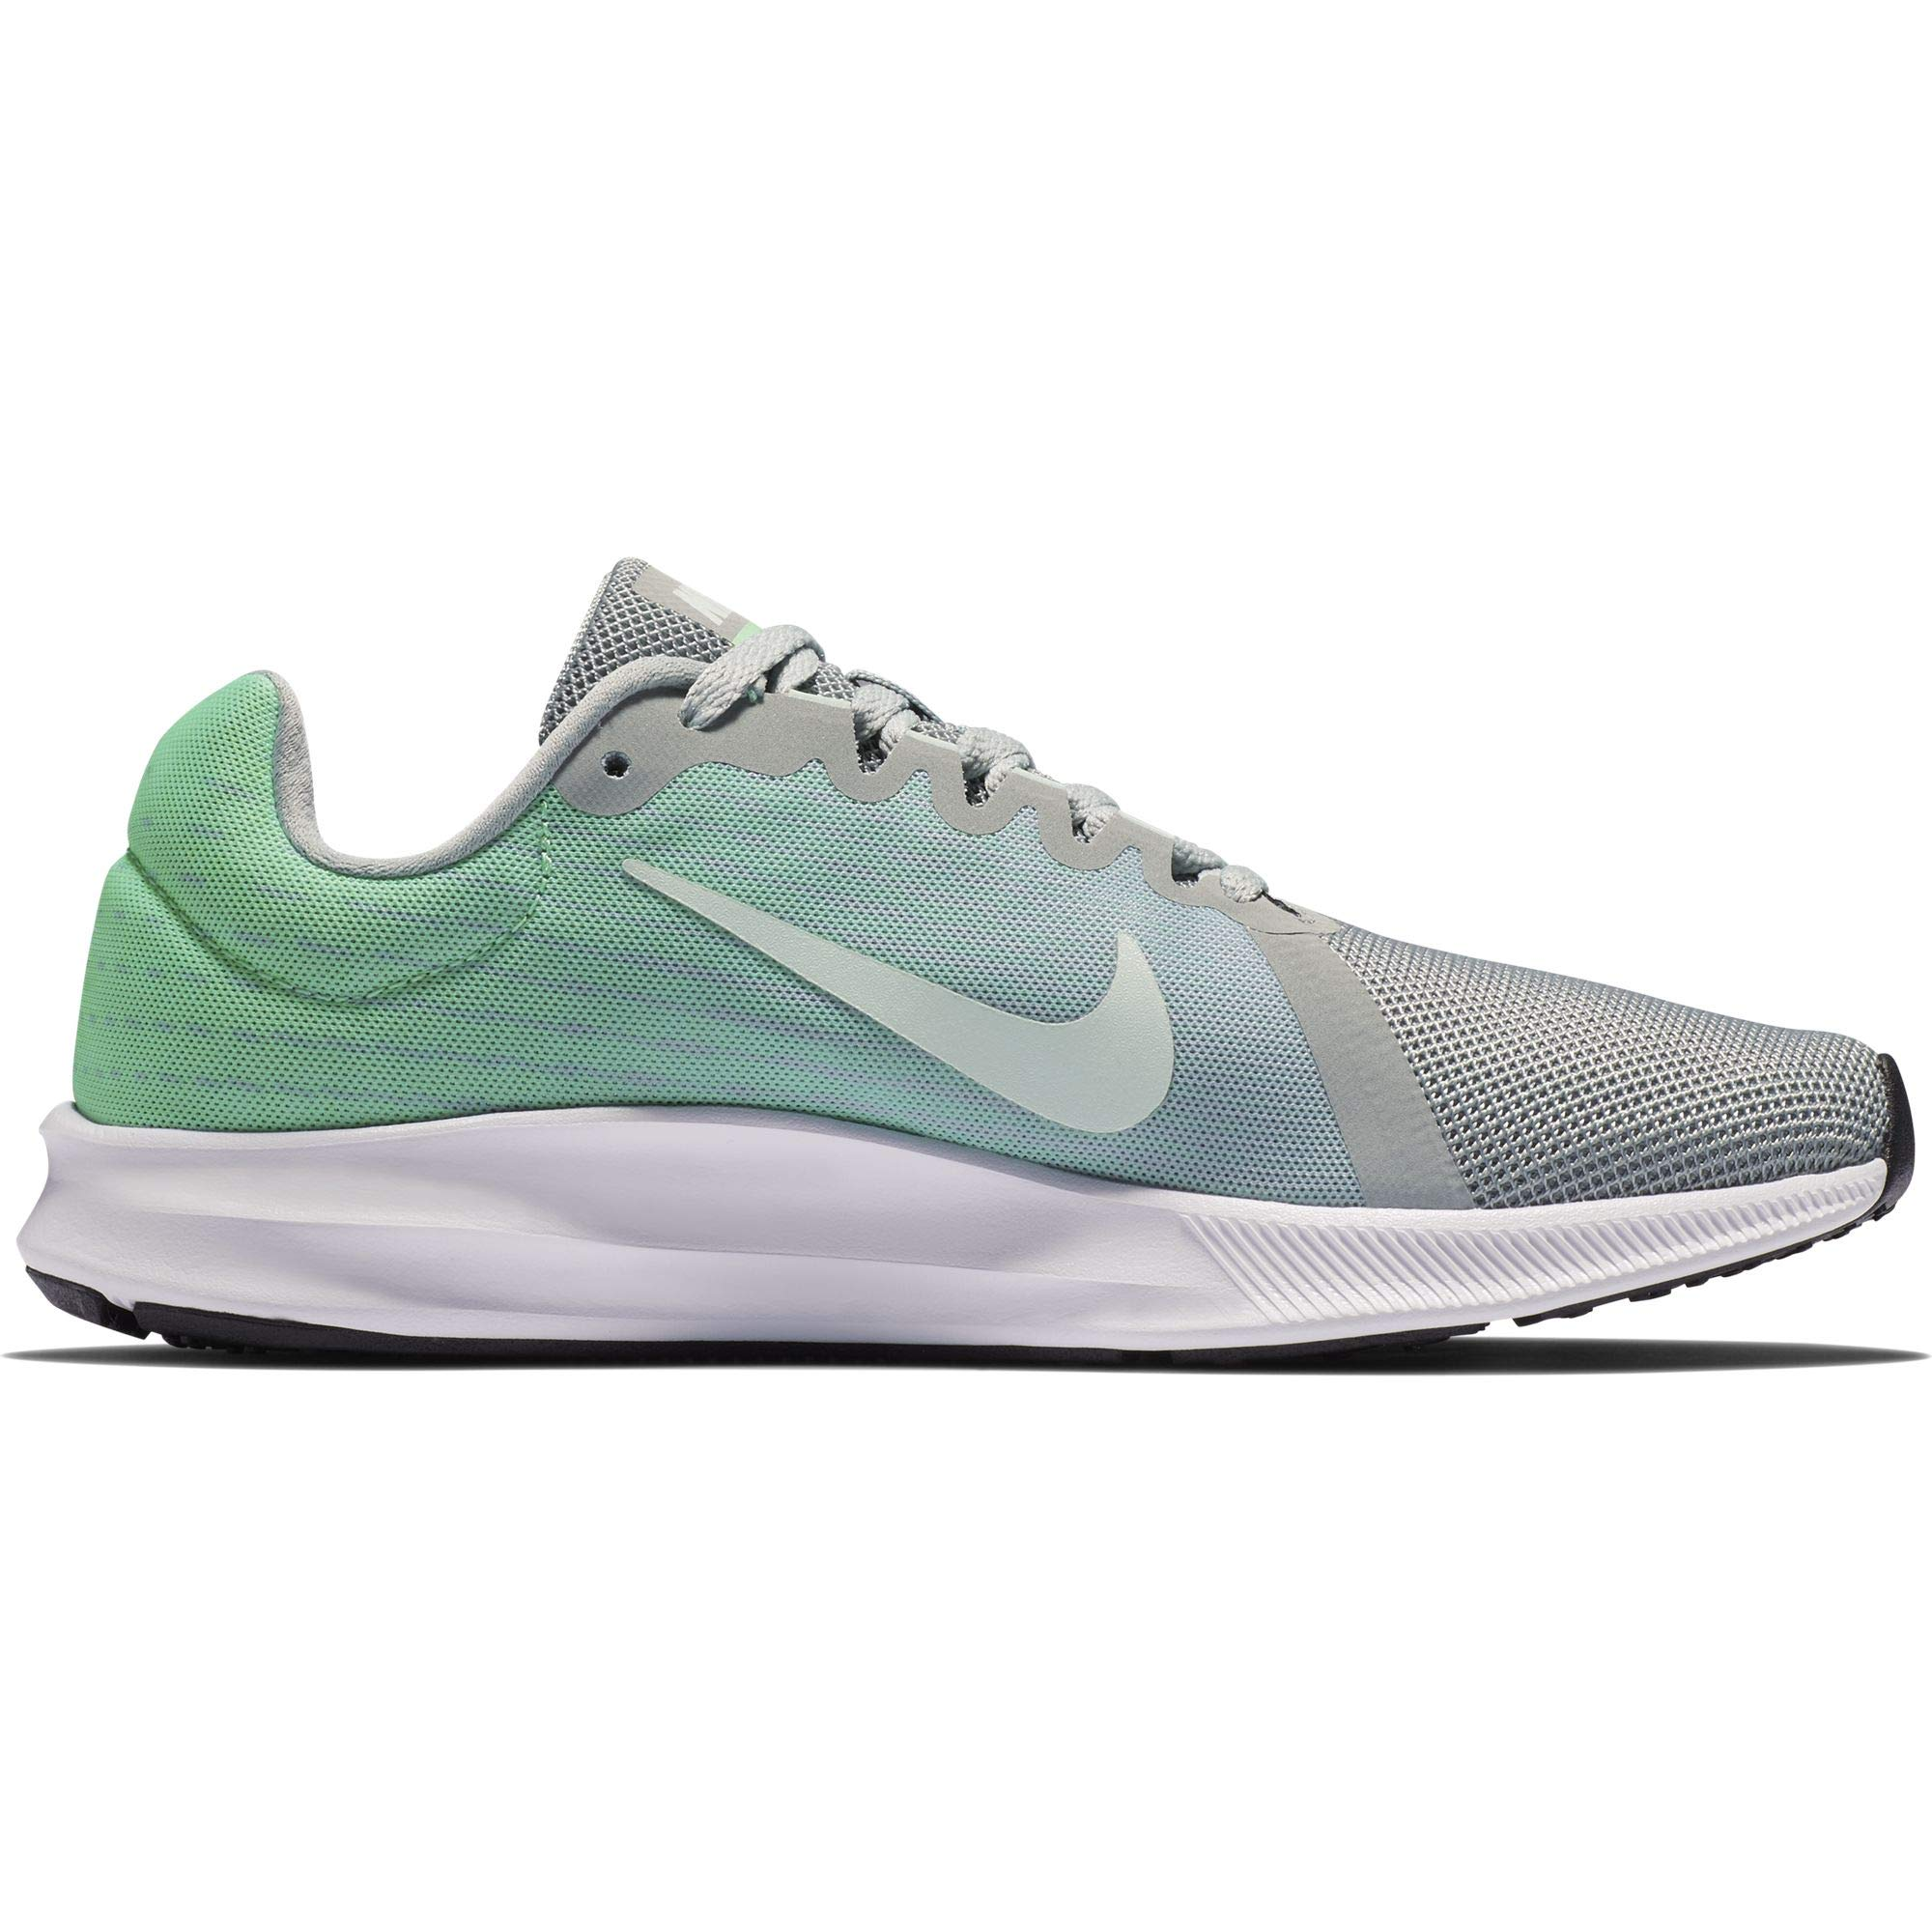 9b999b0a789a9 Galleon - NIKE Women s Downshifter 8 Running Shoe Light Pumice Igloo Green  Glow White Size 9.5 M US